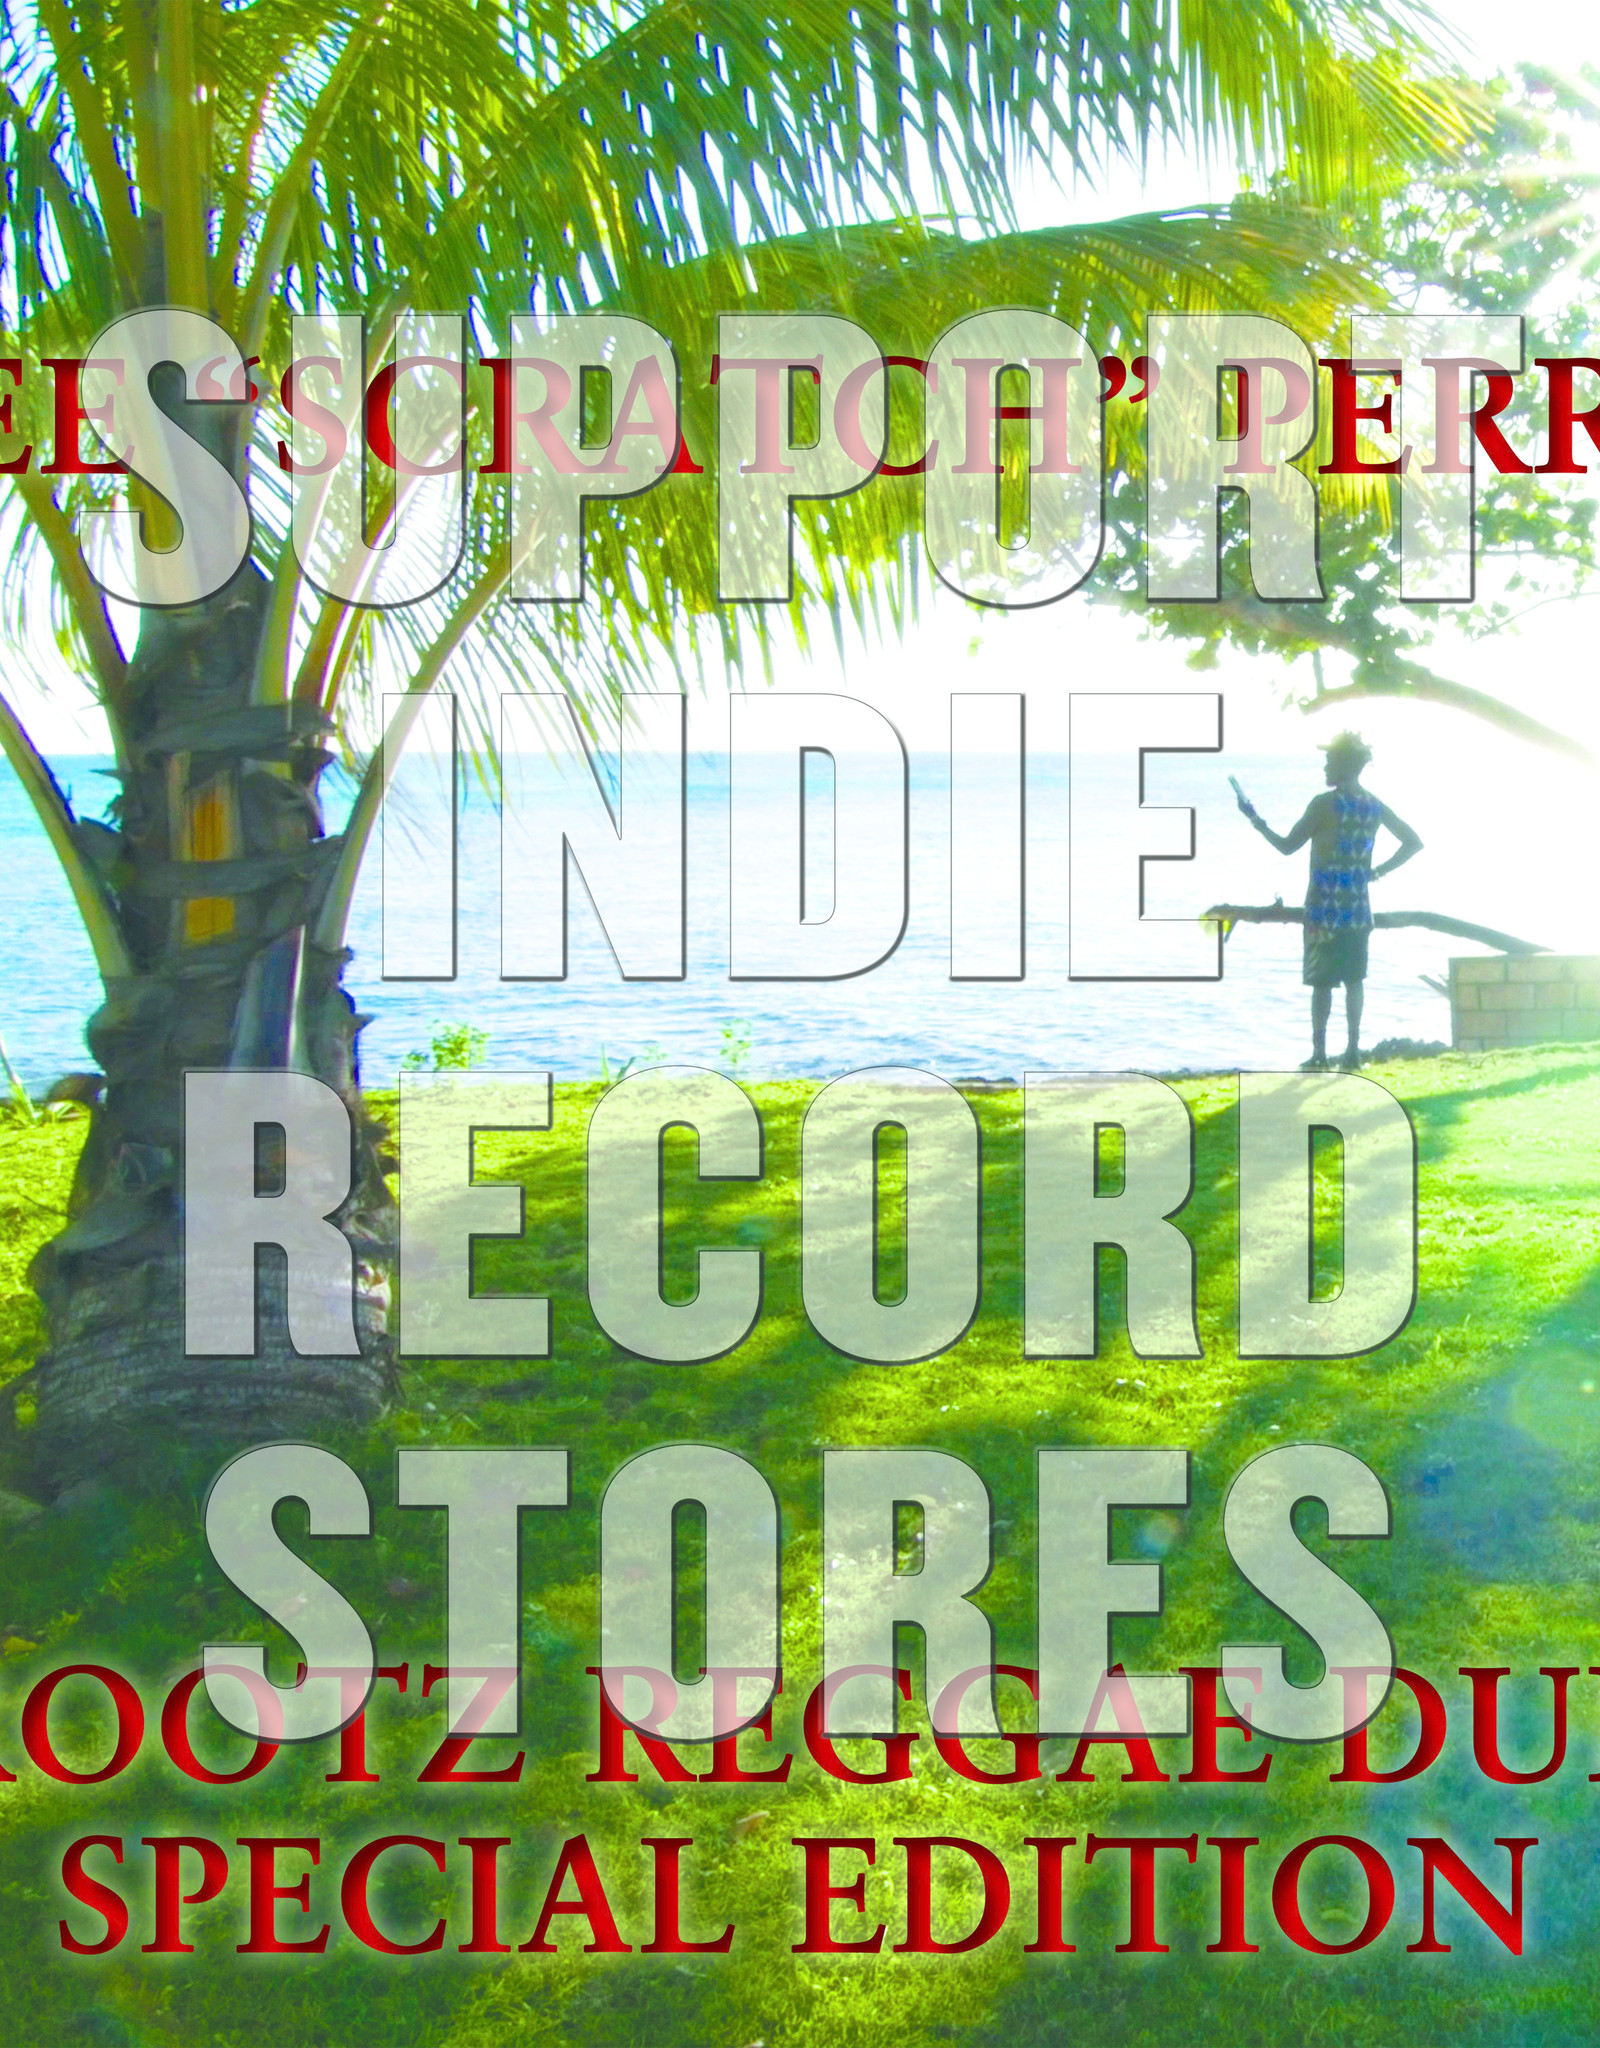 Lee Scratch Perry - Roots Reggae Dub: Special Edition (2Lp)(RSD 2019)